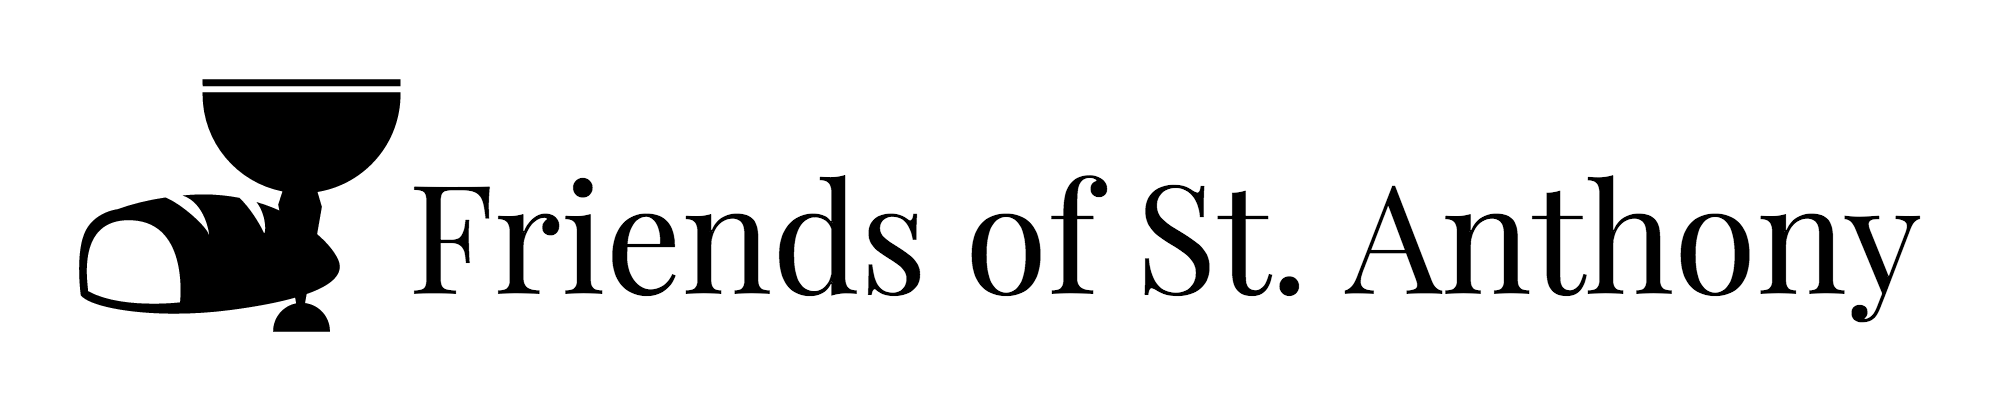 Friends of St. Anthony-logo-black.png